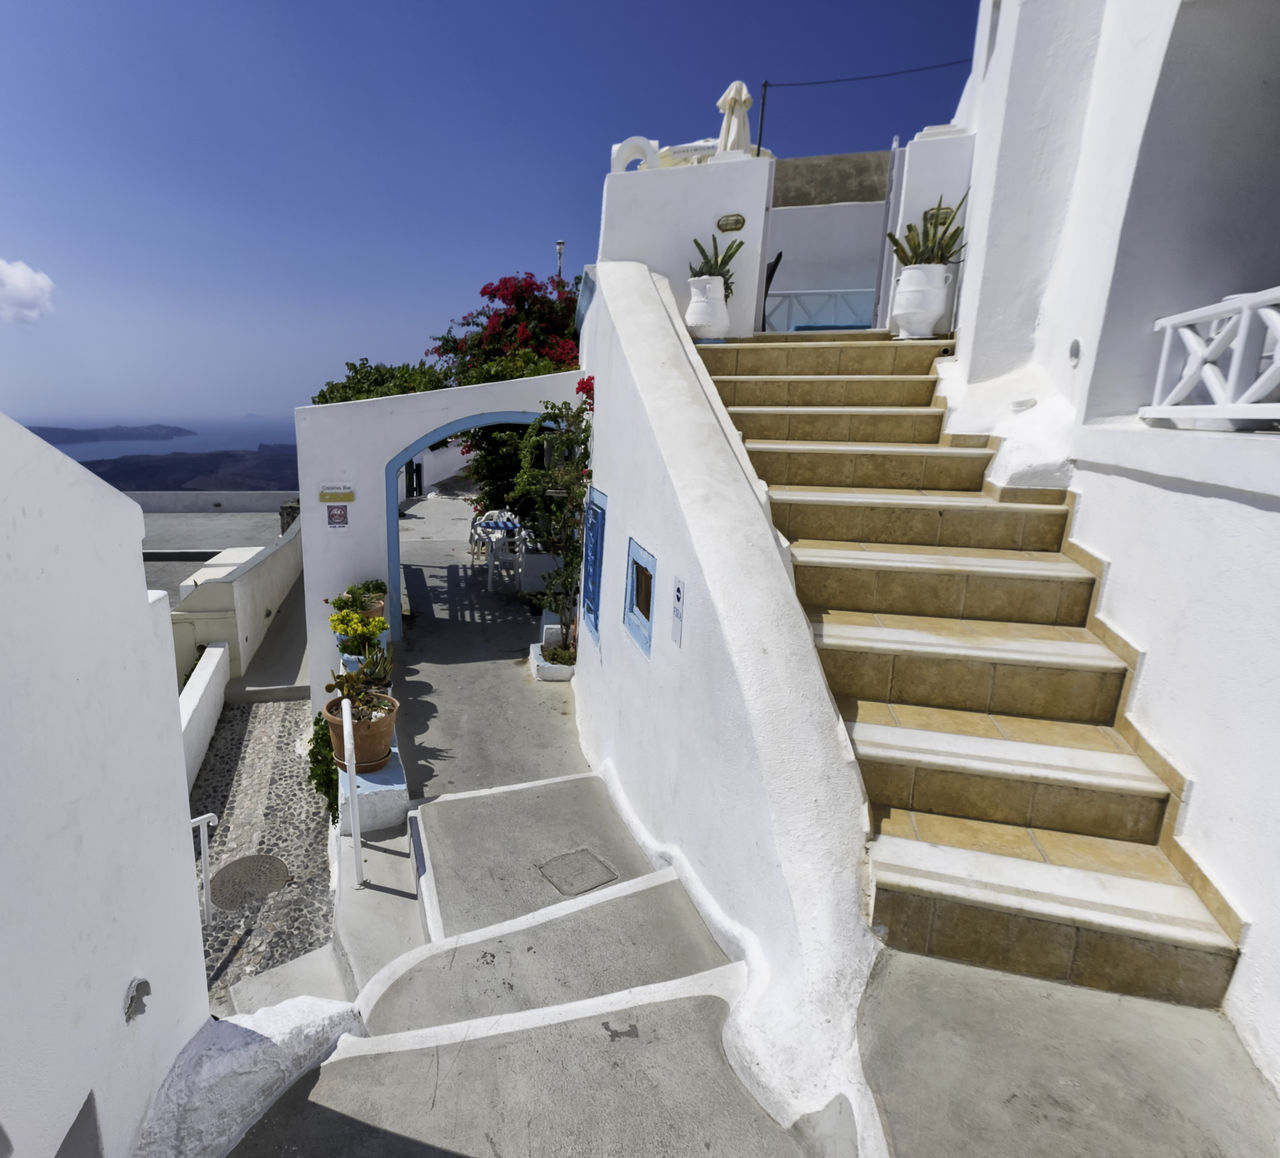 steps, staircase, steps and staircases, white color, whitewashed, built structure, architecture, railing, day, no people, outdoors, building exterior, sky